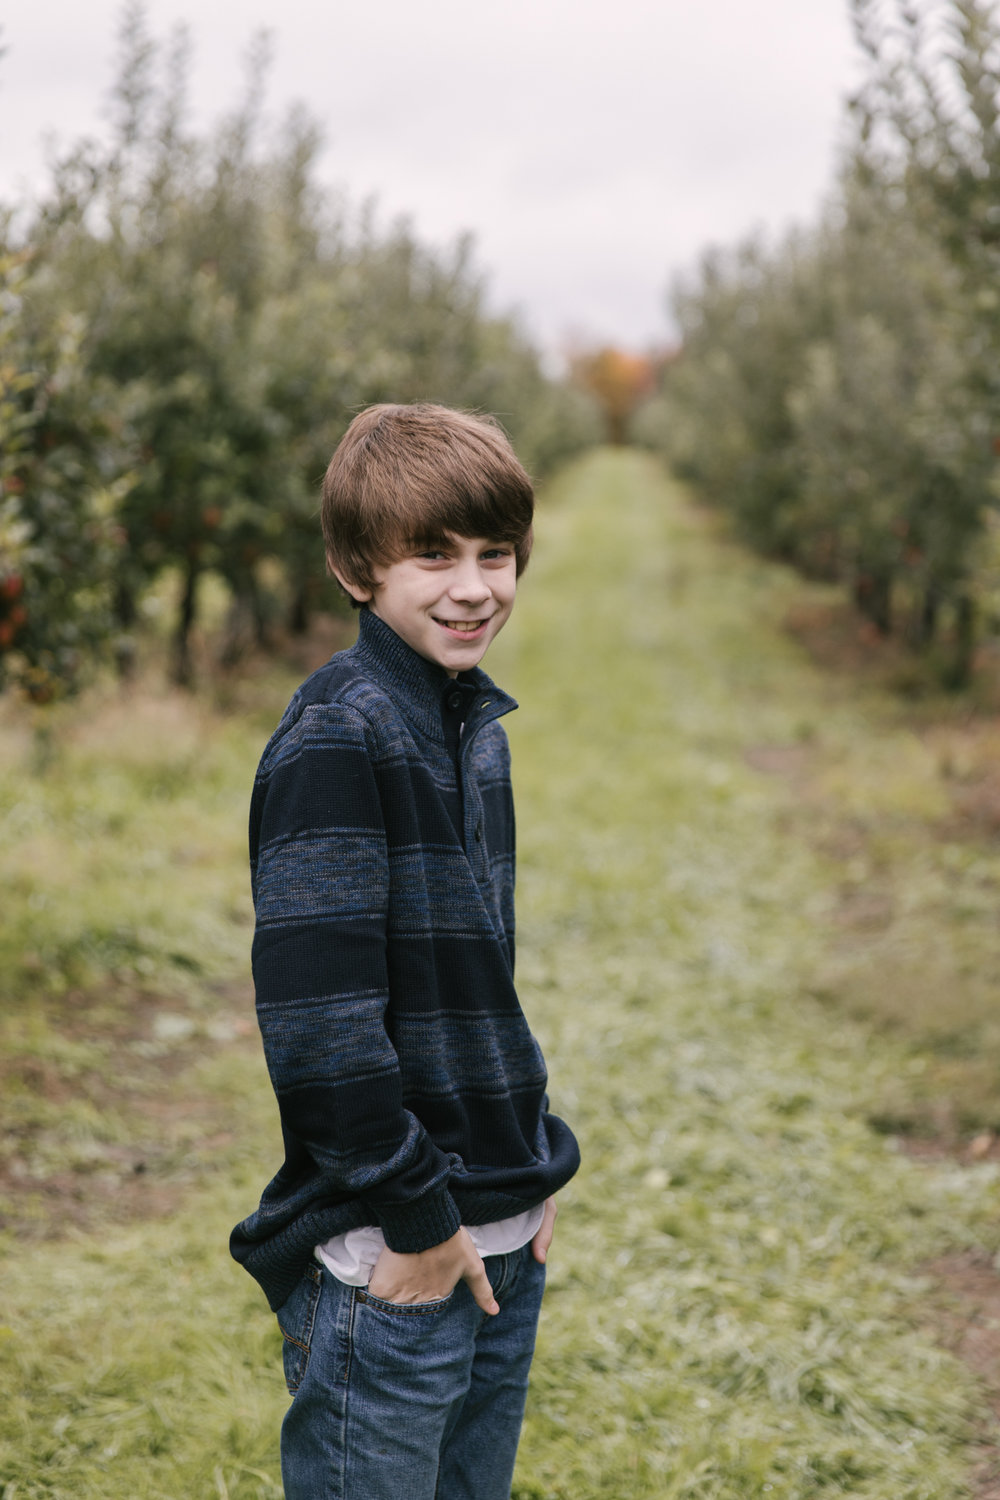 family-photography-session-at-hartford-apple-orchards-hartford-ohio-by-family-photographer-christie-leigh-photo-55.JPG